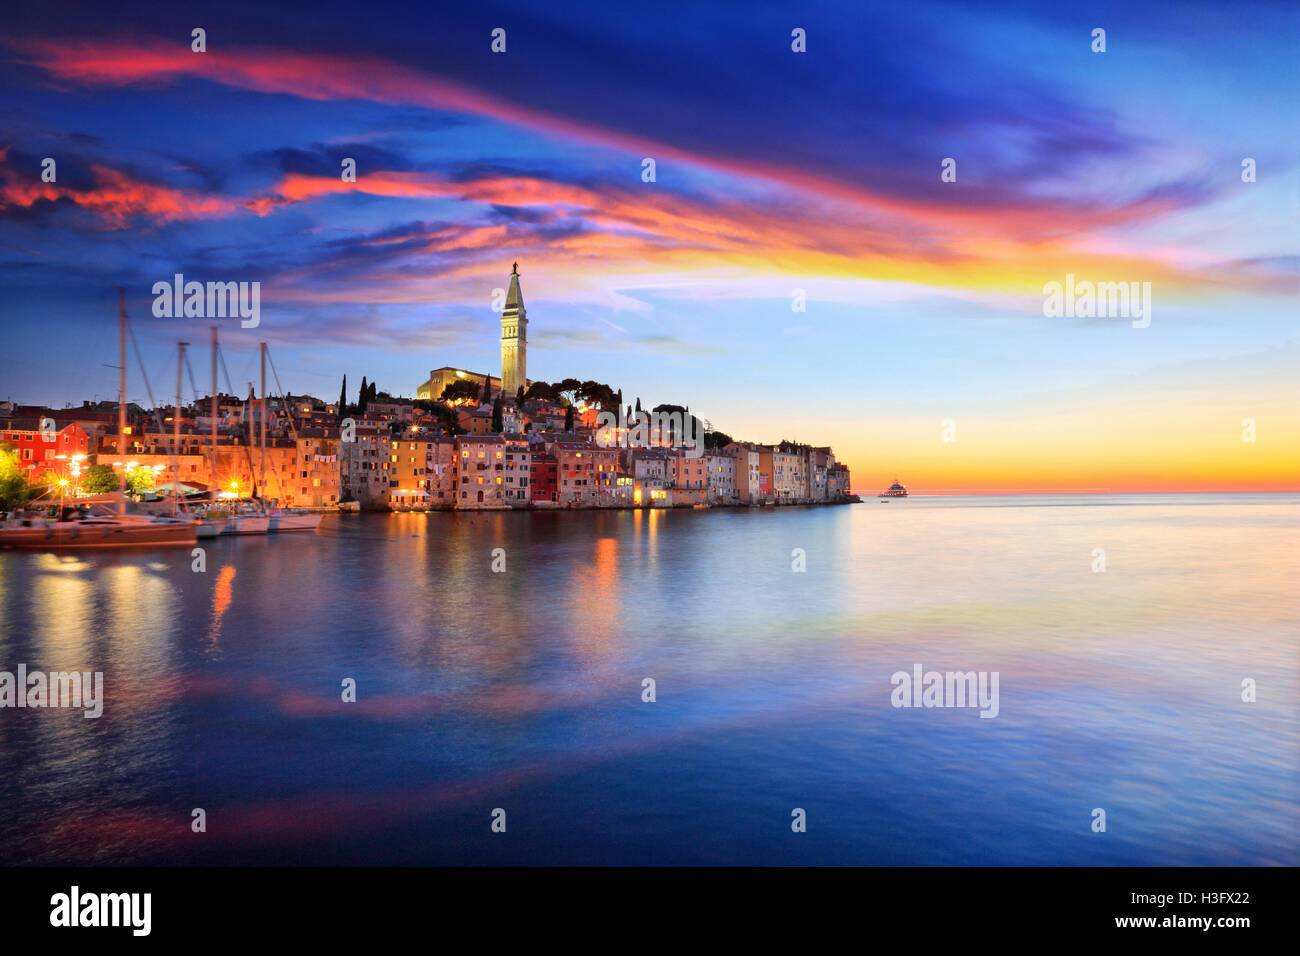 Rovinj small town at sunset in Croatia - Stock Image